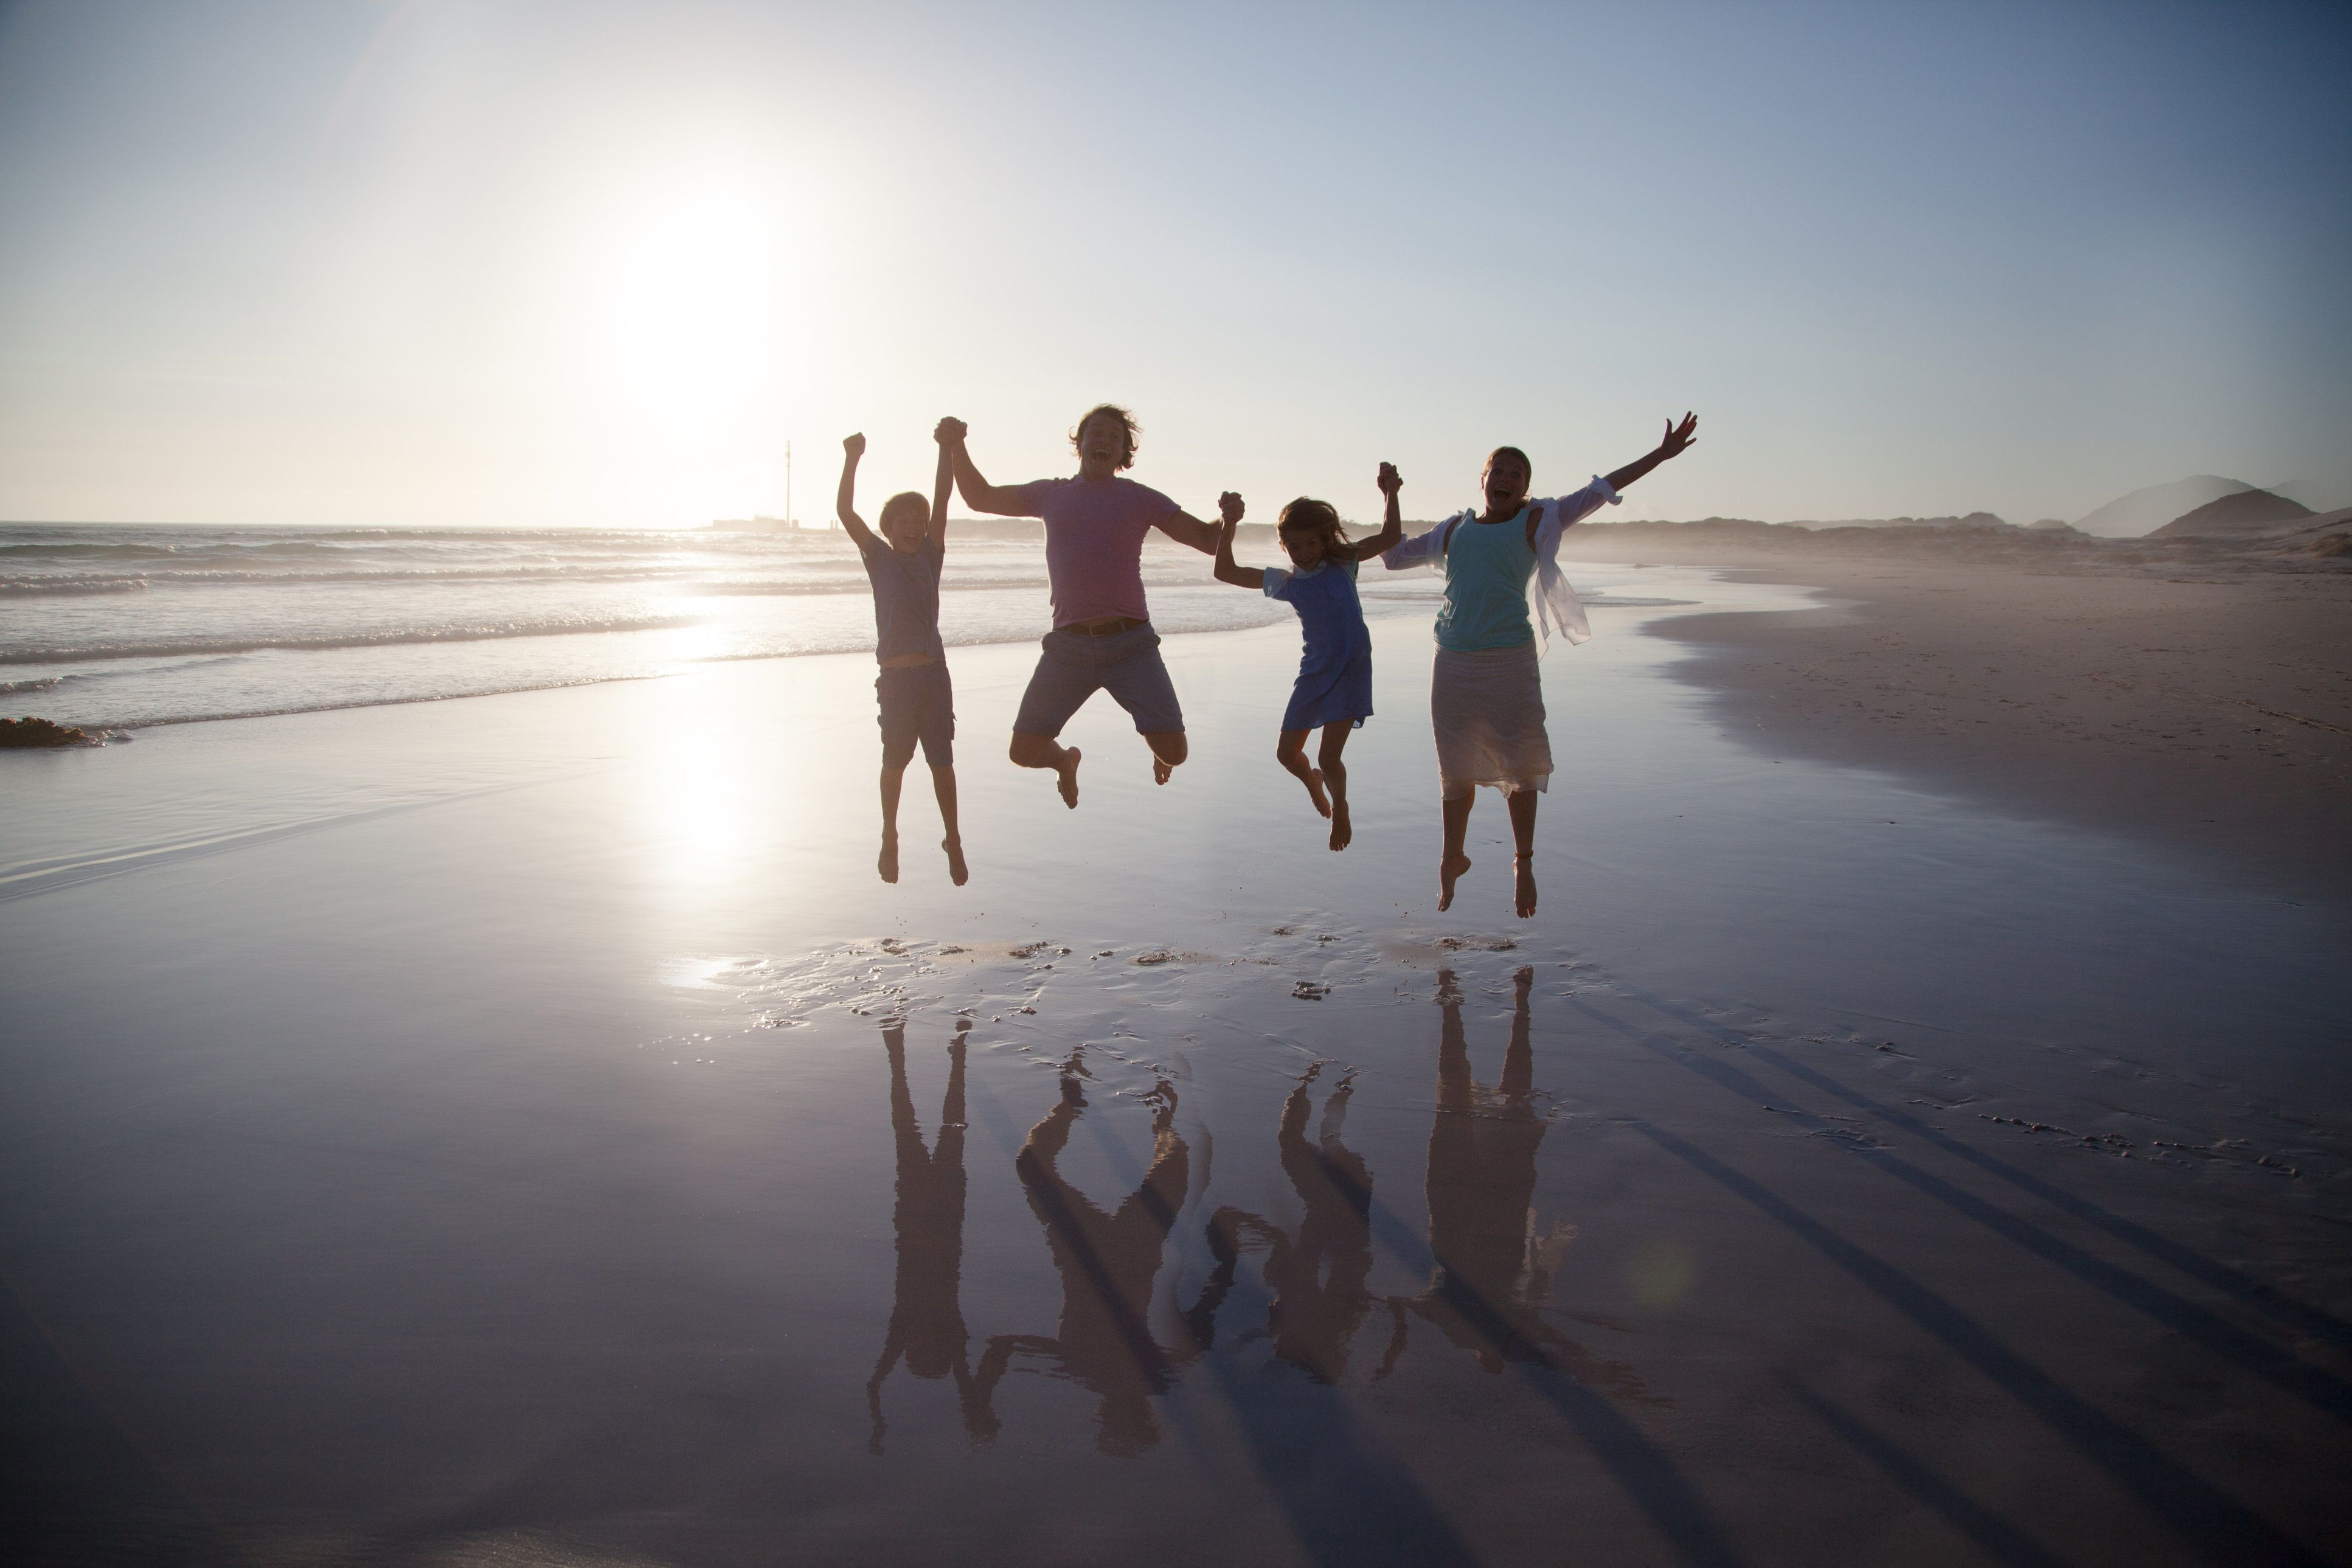 Family with two children  jumping together on a beach at sunset